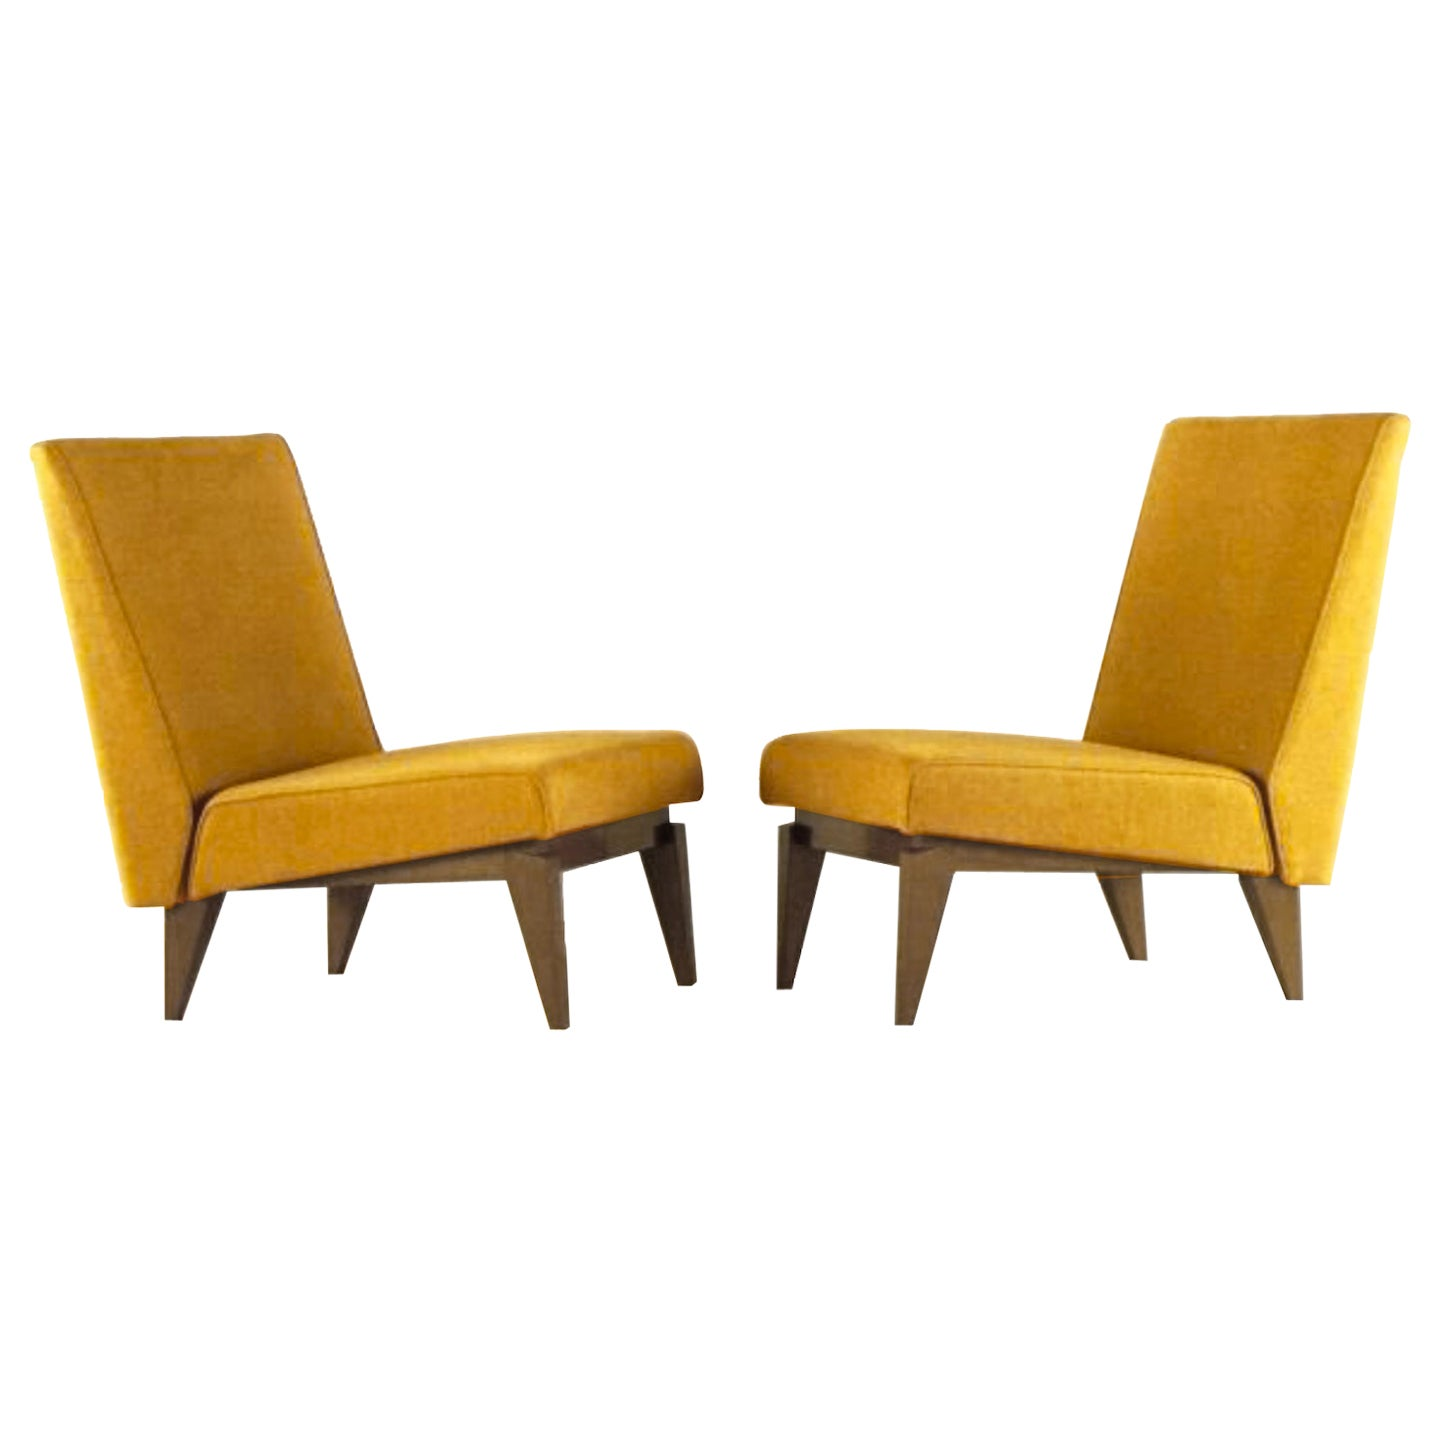 Maxime Old Love Seat in Fabric and Oak